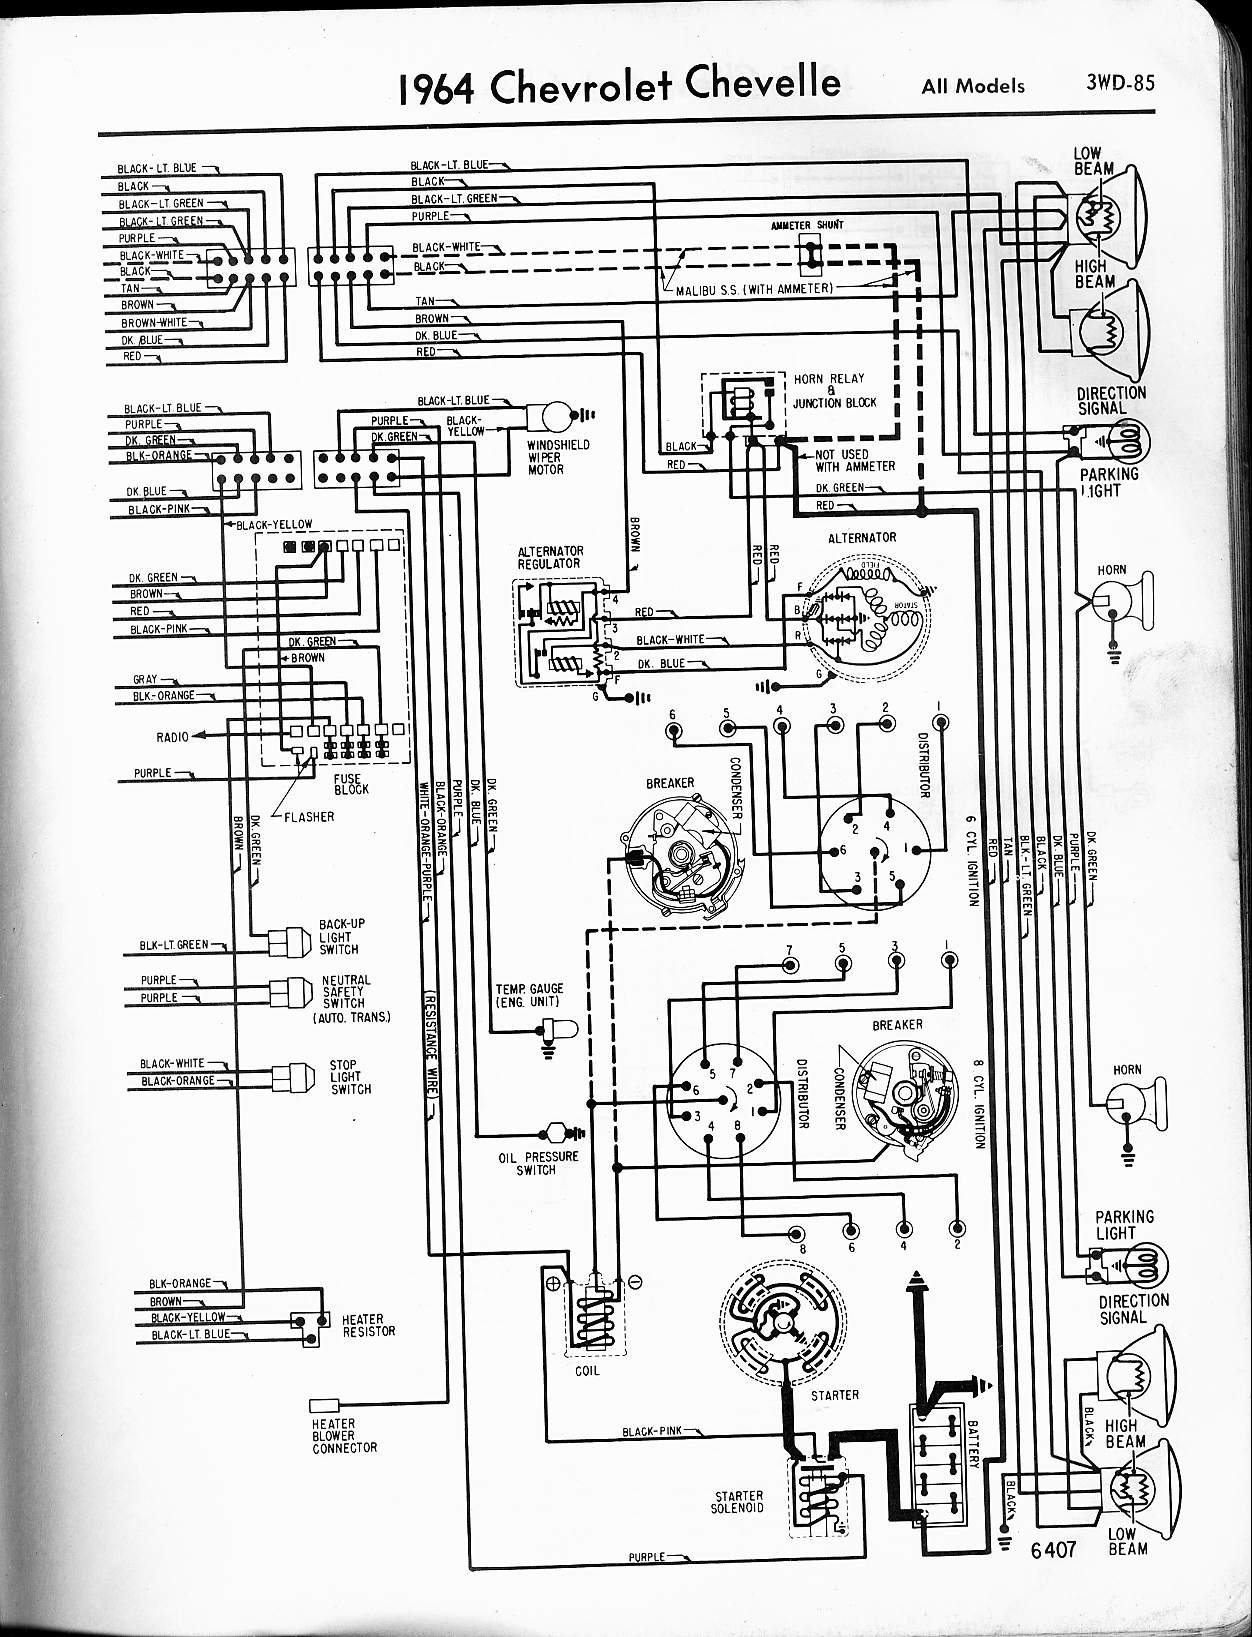 66 corvair wiring diagram just wiring data 1966 chevy truck diagram 1965 chevelle wiring diagram data wiring schema corvair 4 speed diagram 66 corvair wiring diagram